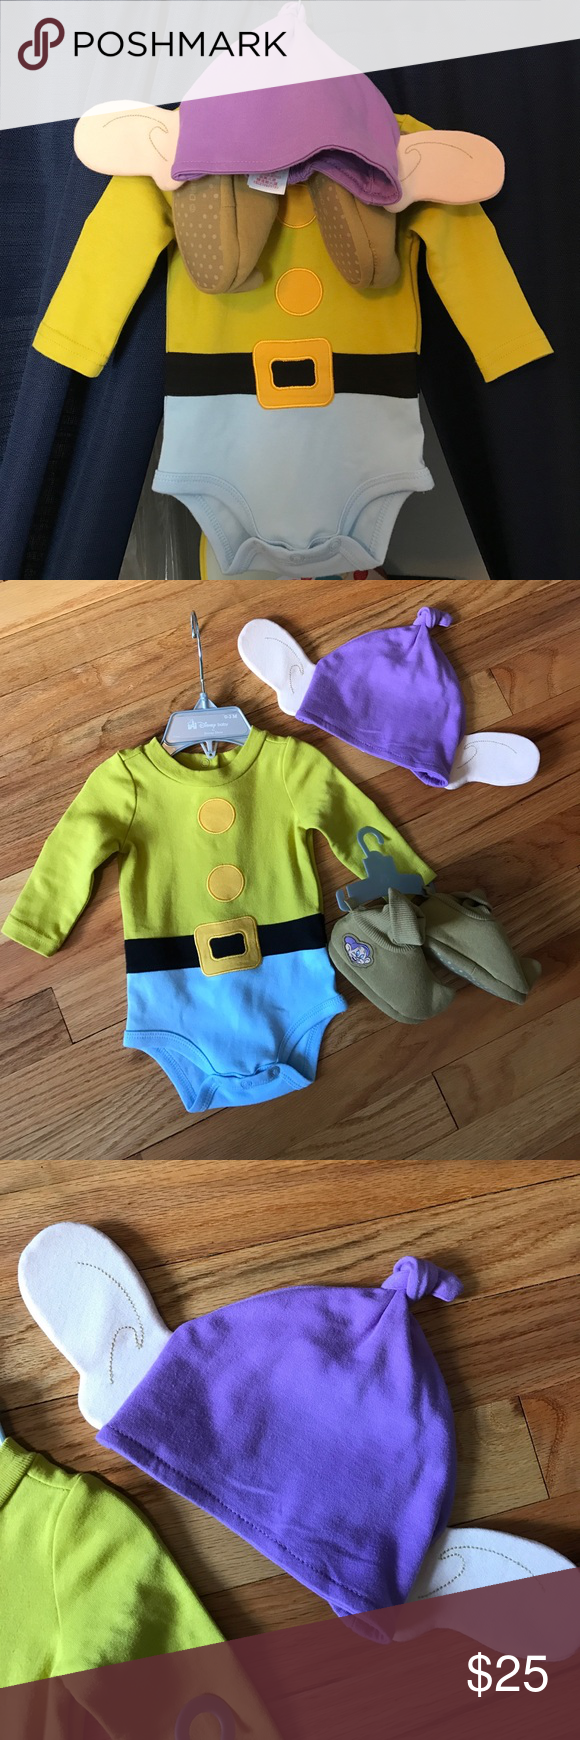 23f161132 Baby's first Halloween costume - Dopey Authentic Disney Store Dopey  Halloween costume. Worn for pictures and was so sweet on! Onesie is 0-3  months and shoes ...